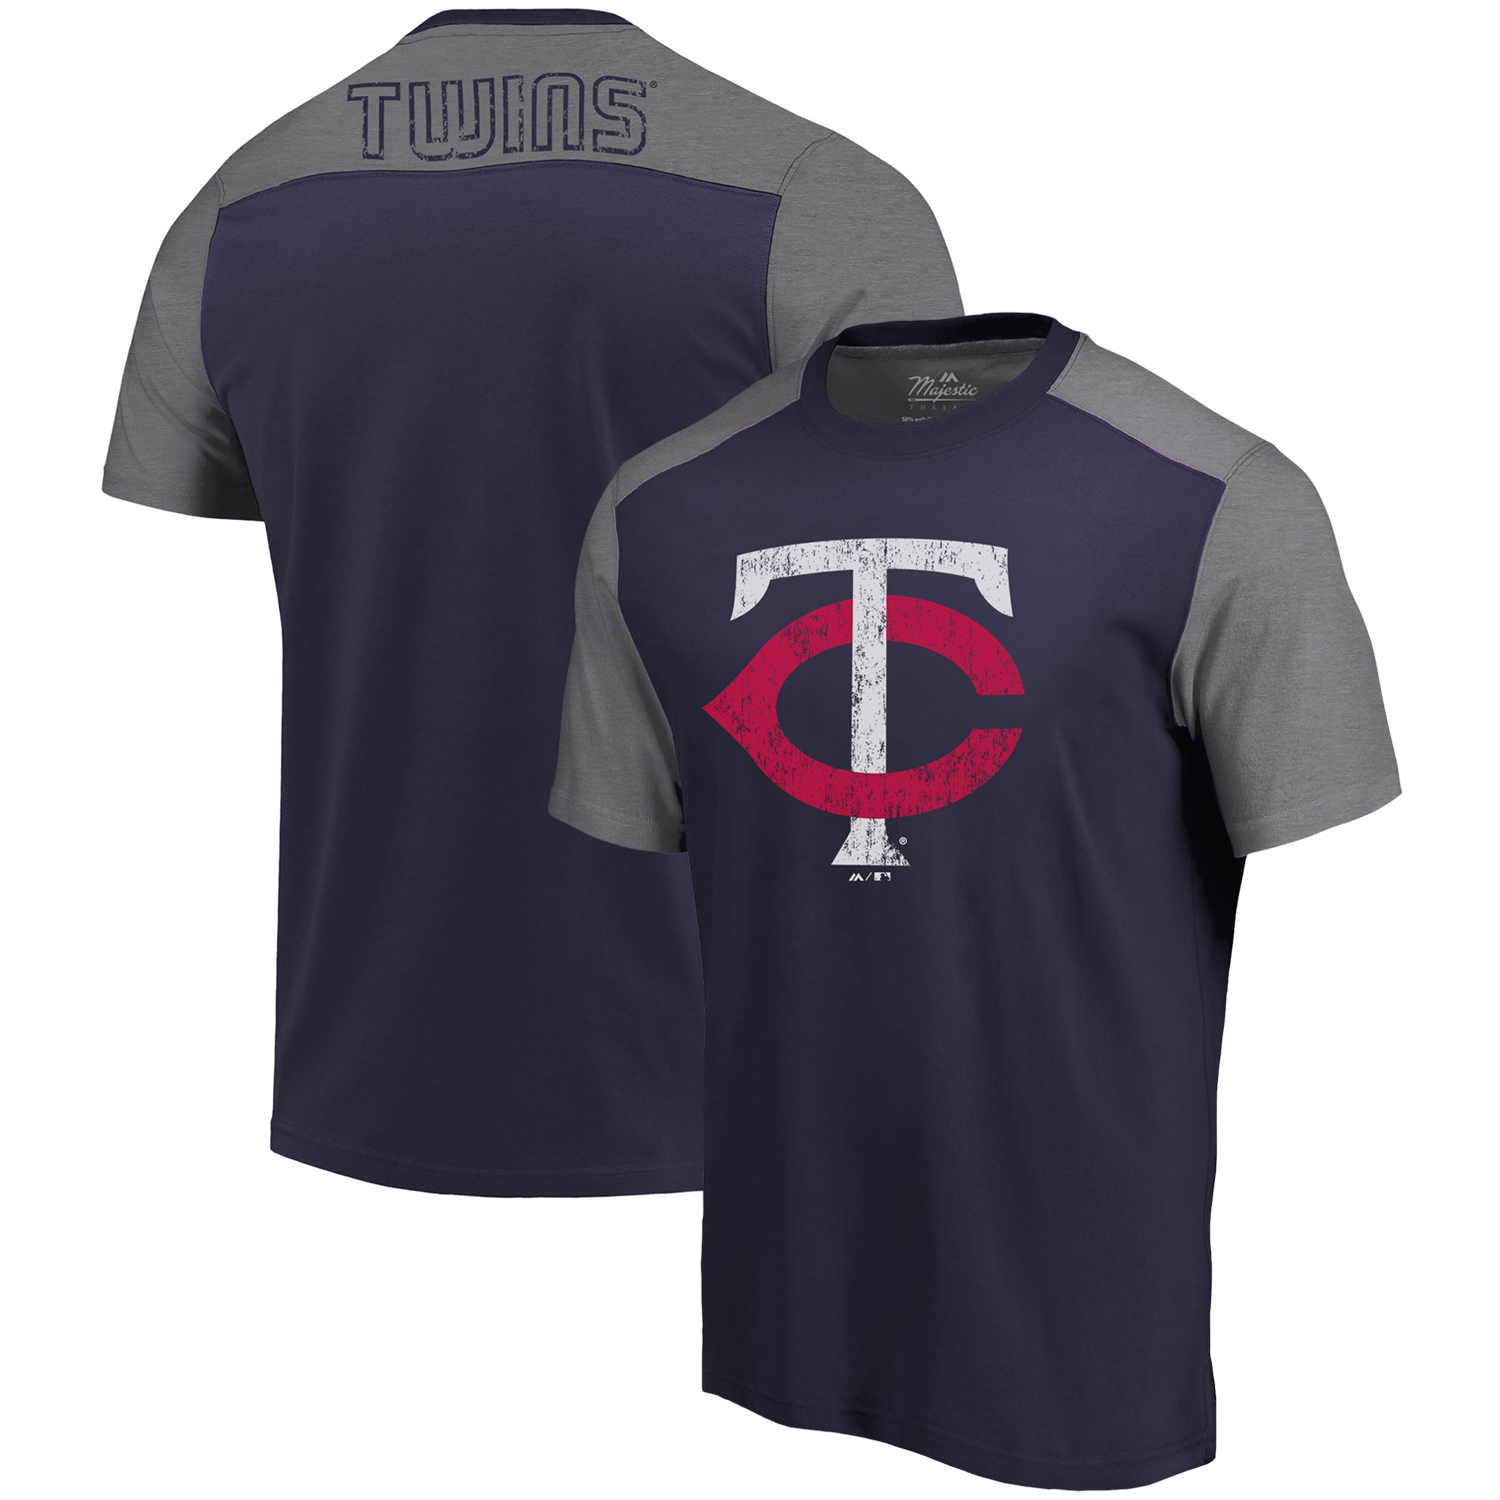 Minnesota Twins Majestic Threads Color Blocked T-Shirt - Navy/Gray